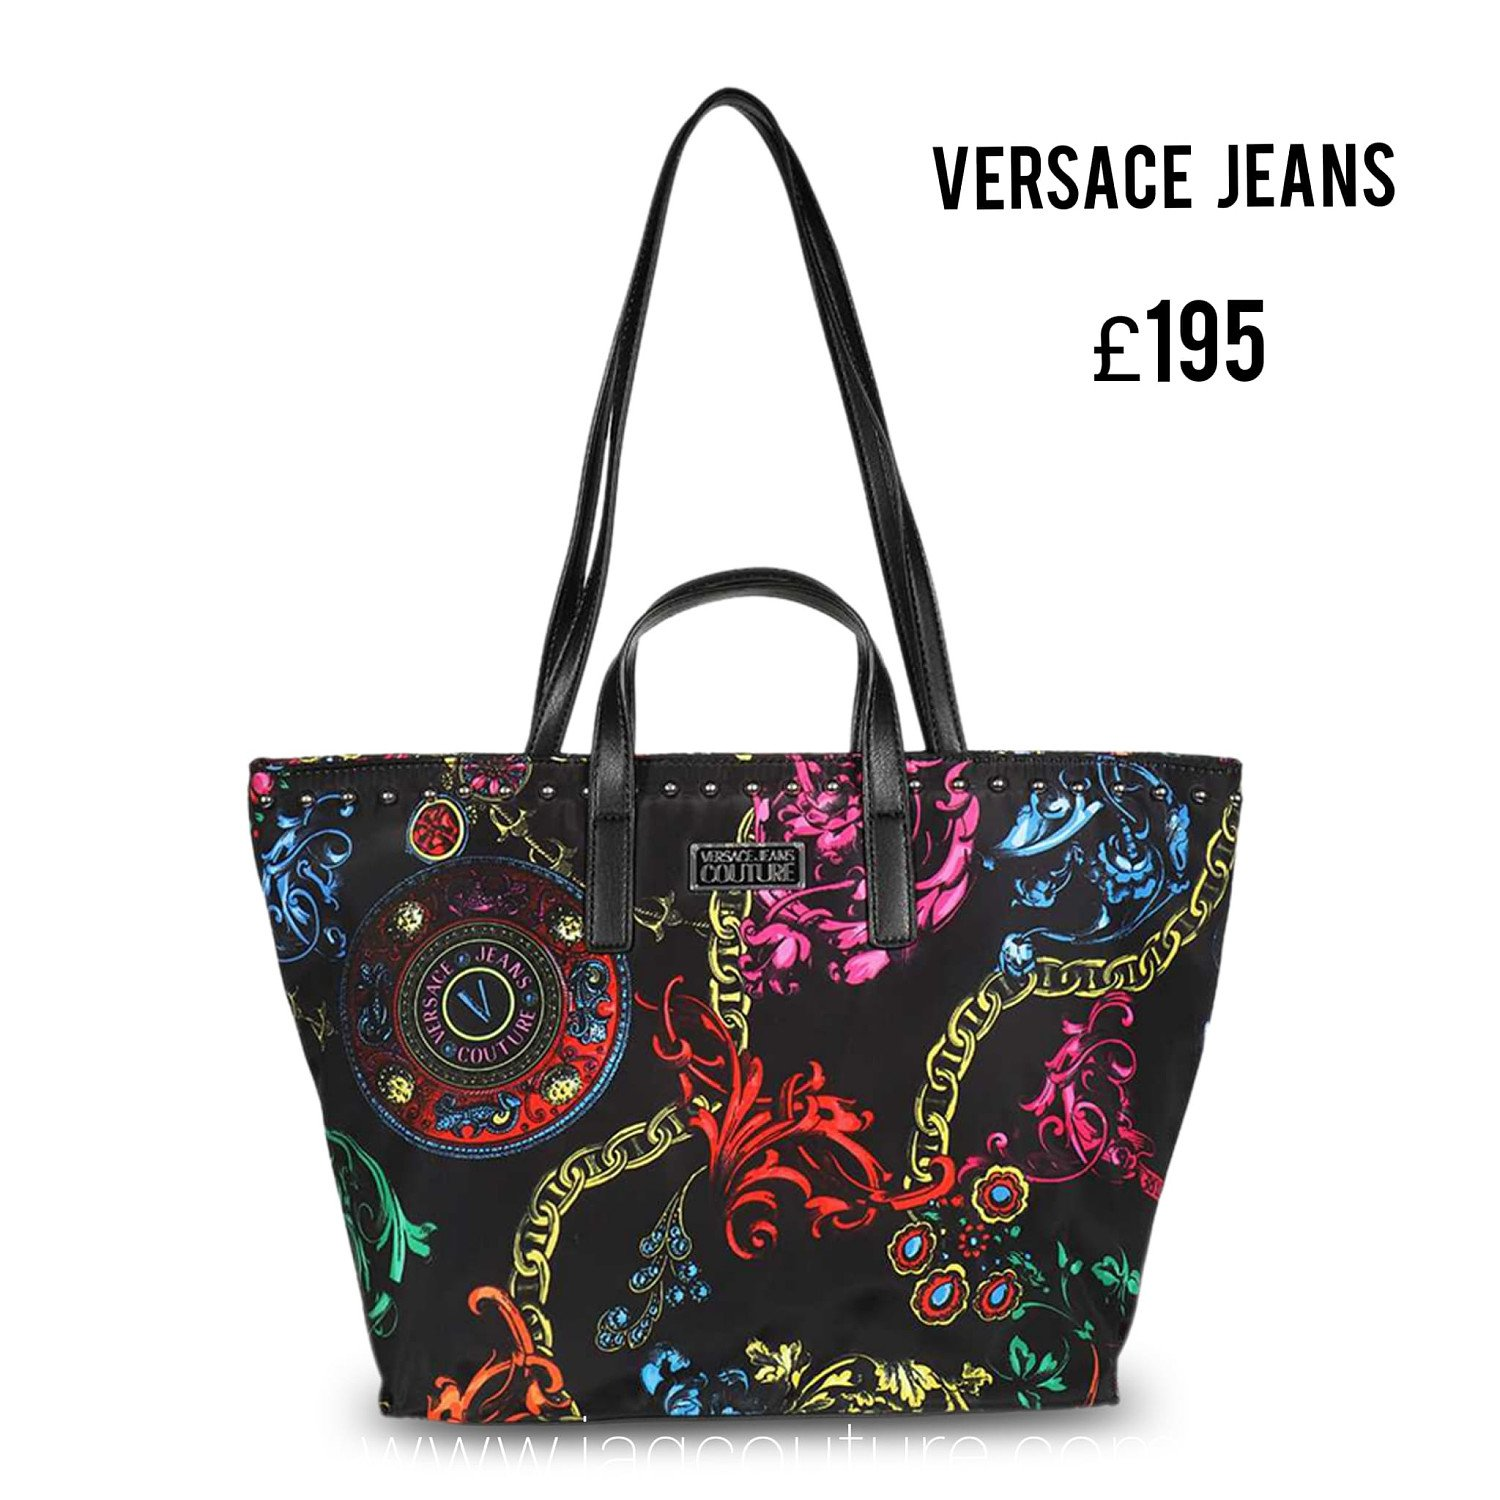 Save Additional 20% and Free Delivery on This Stylish VERSACE JEANS Women's Shopping bag